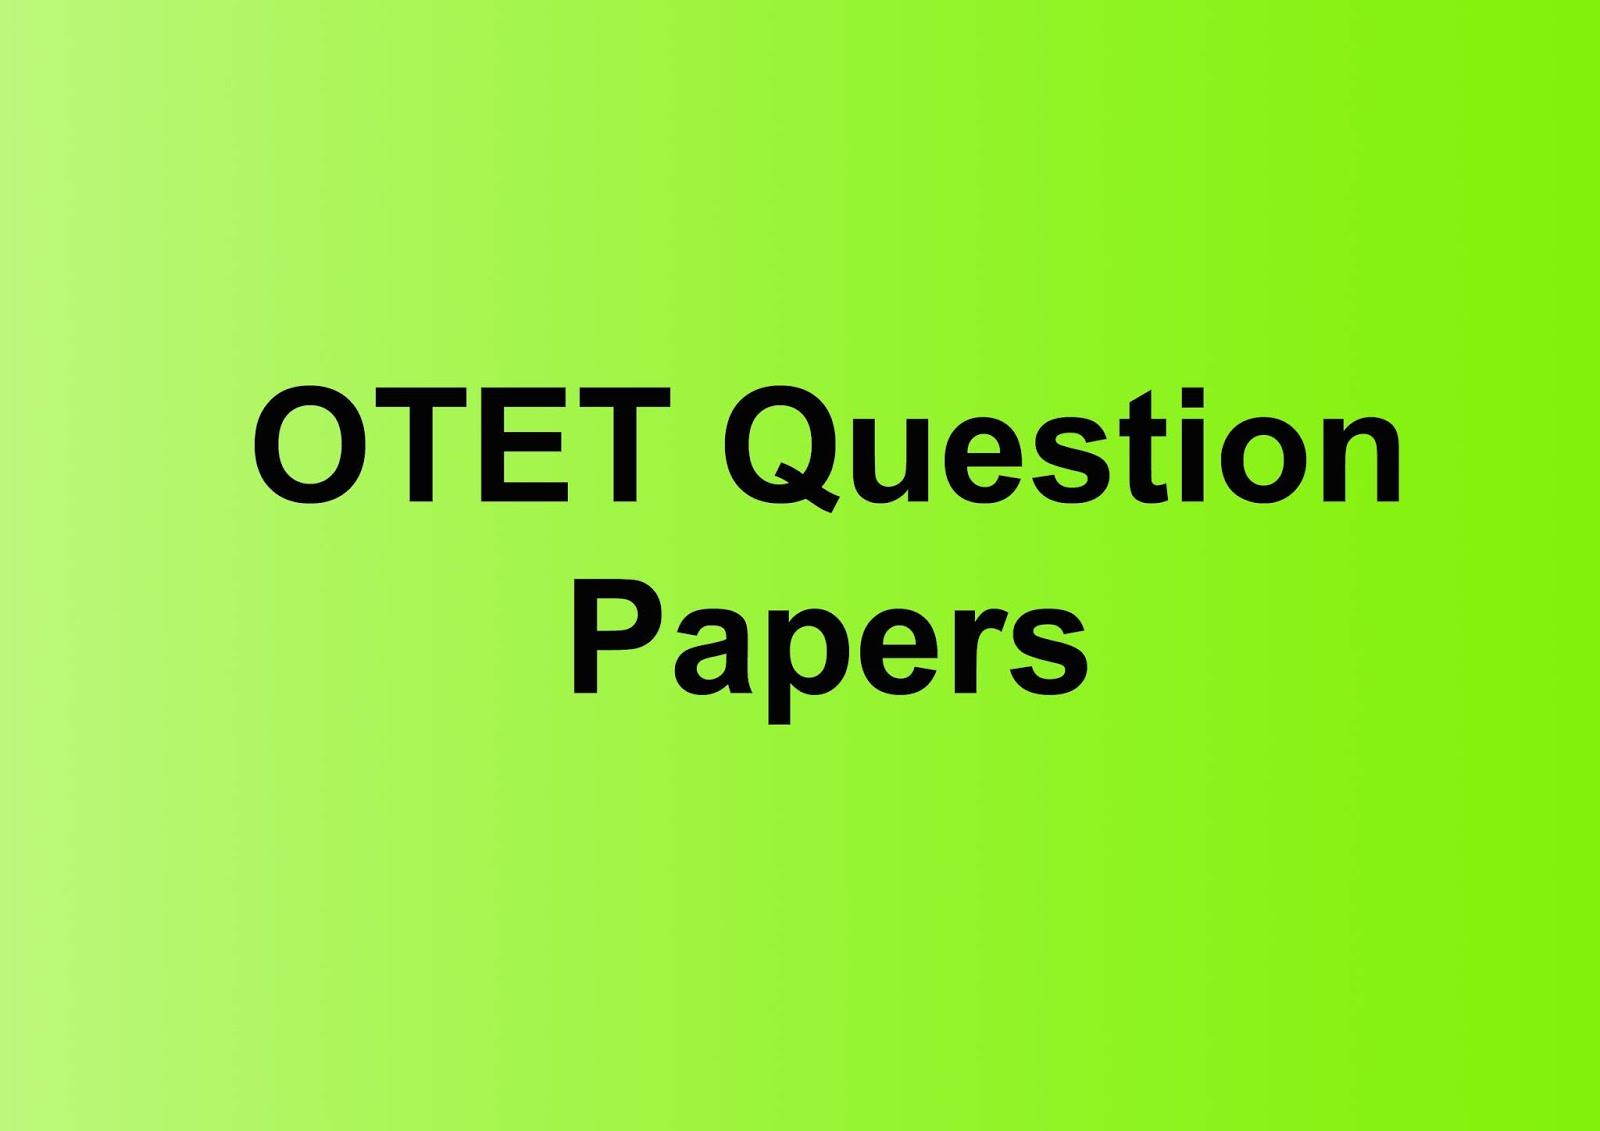 OTET question papers